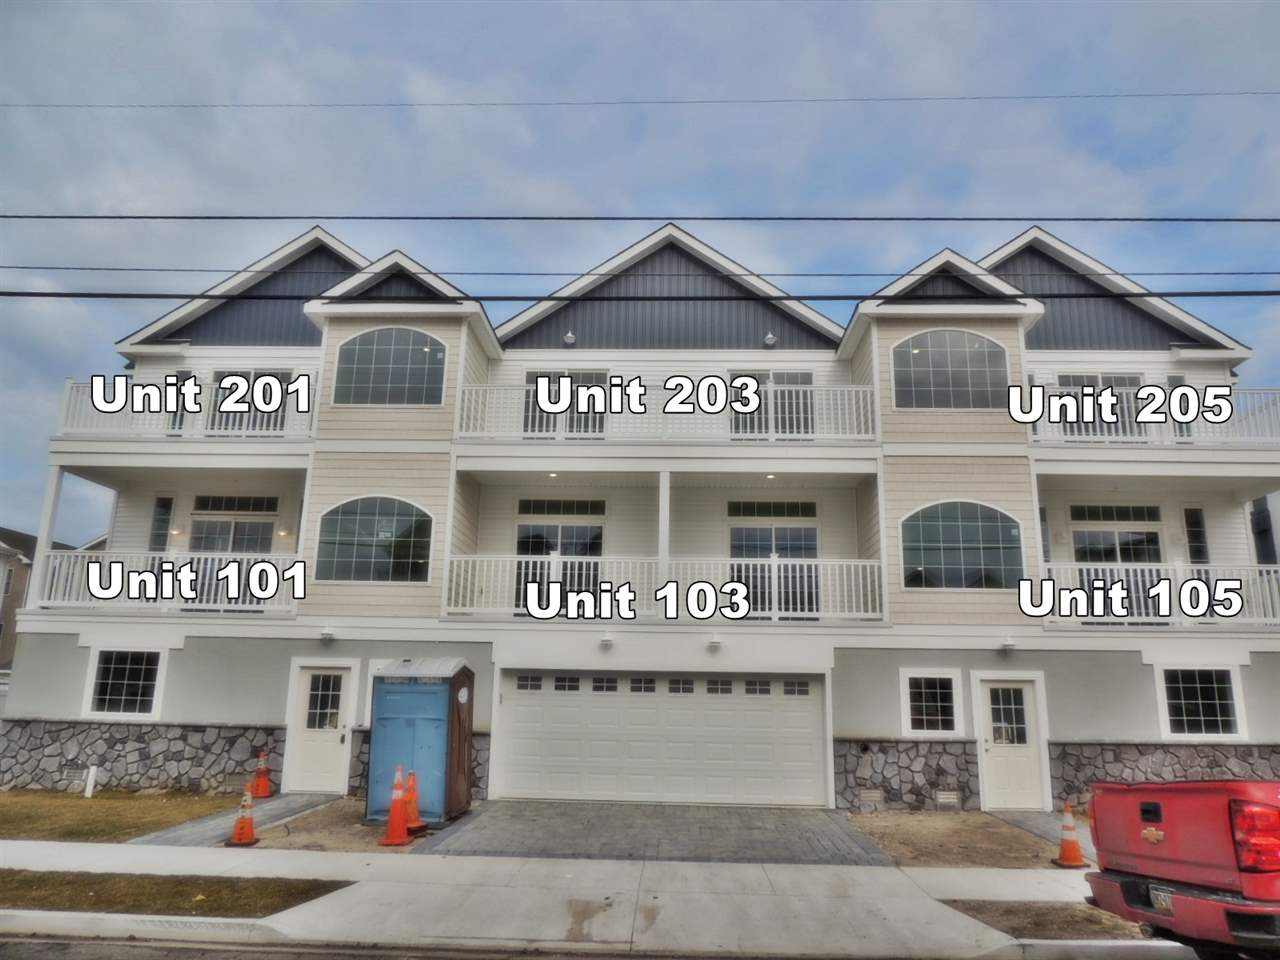 421, Unit 201 23rd Avenue, North Wildwood